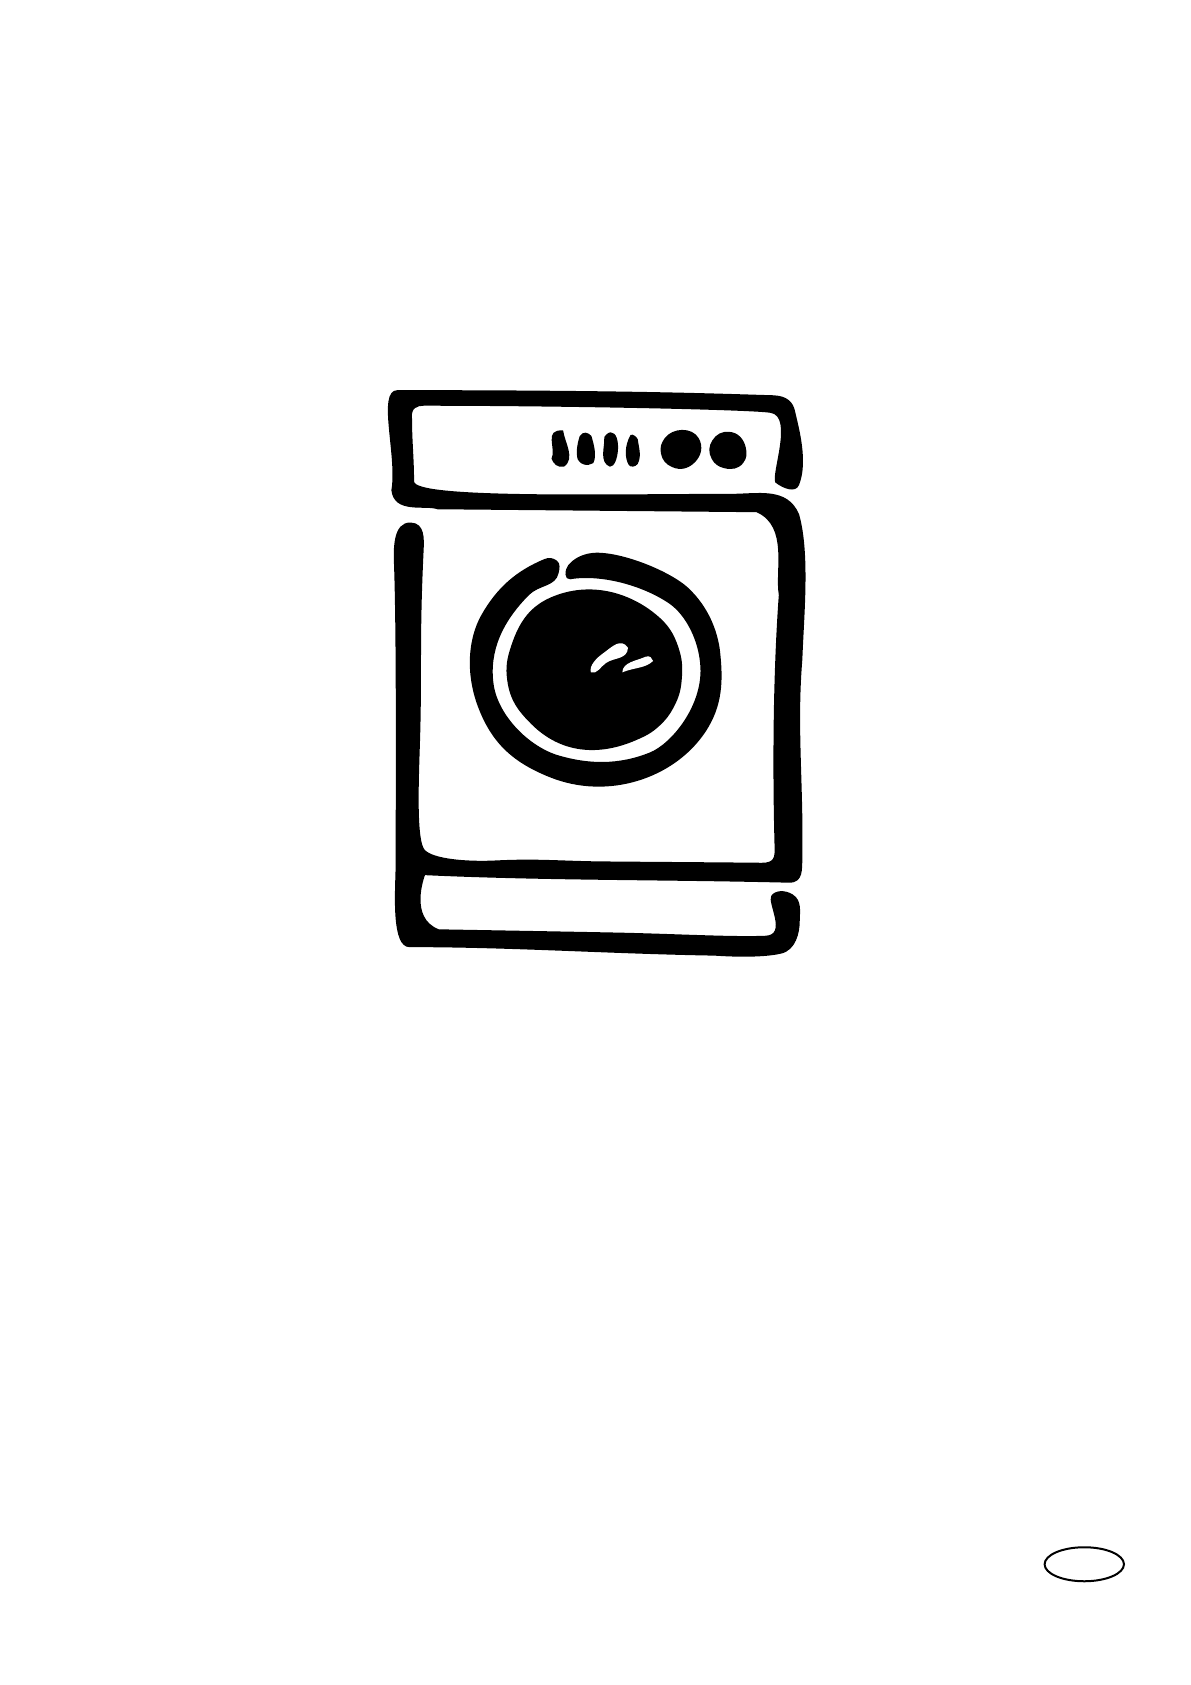 electrolux washer dryer ew 1200 i user guide manualsonline com rh laundry manualsonline com electrolux aqualux 1200 manual pdf electrolux aqualux 1200 programme guide